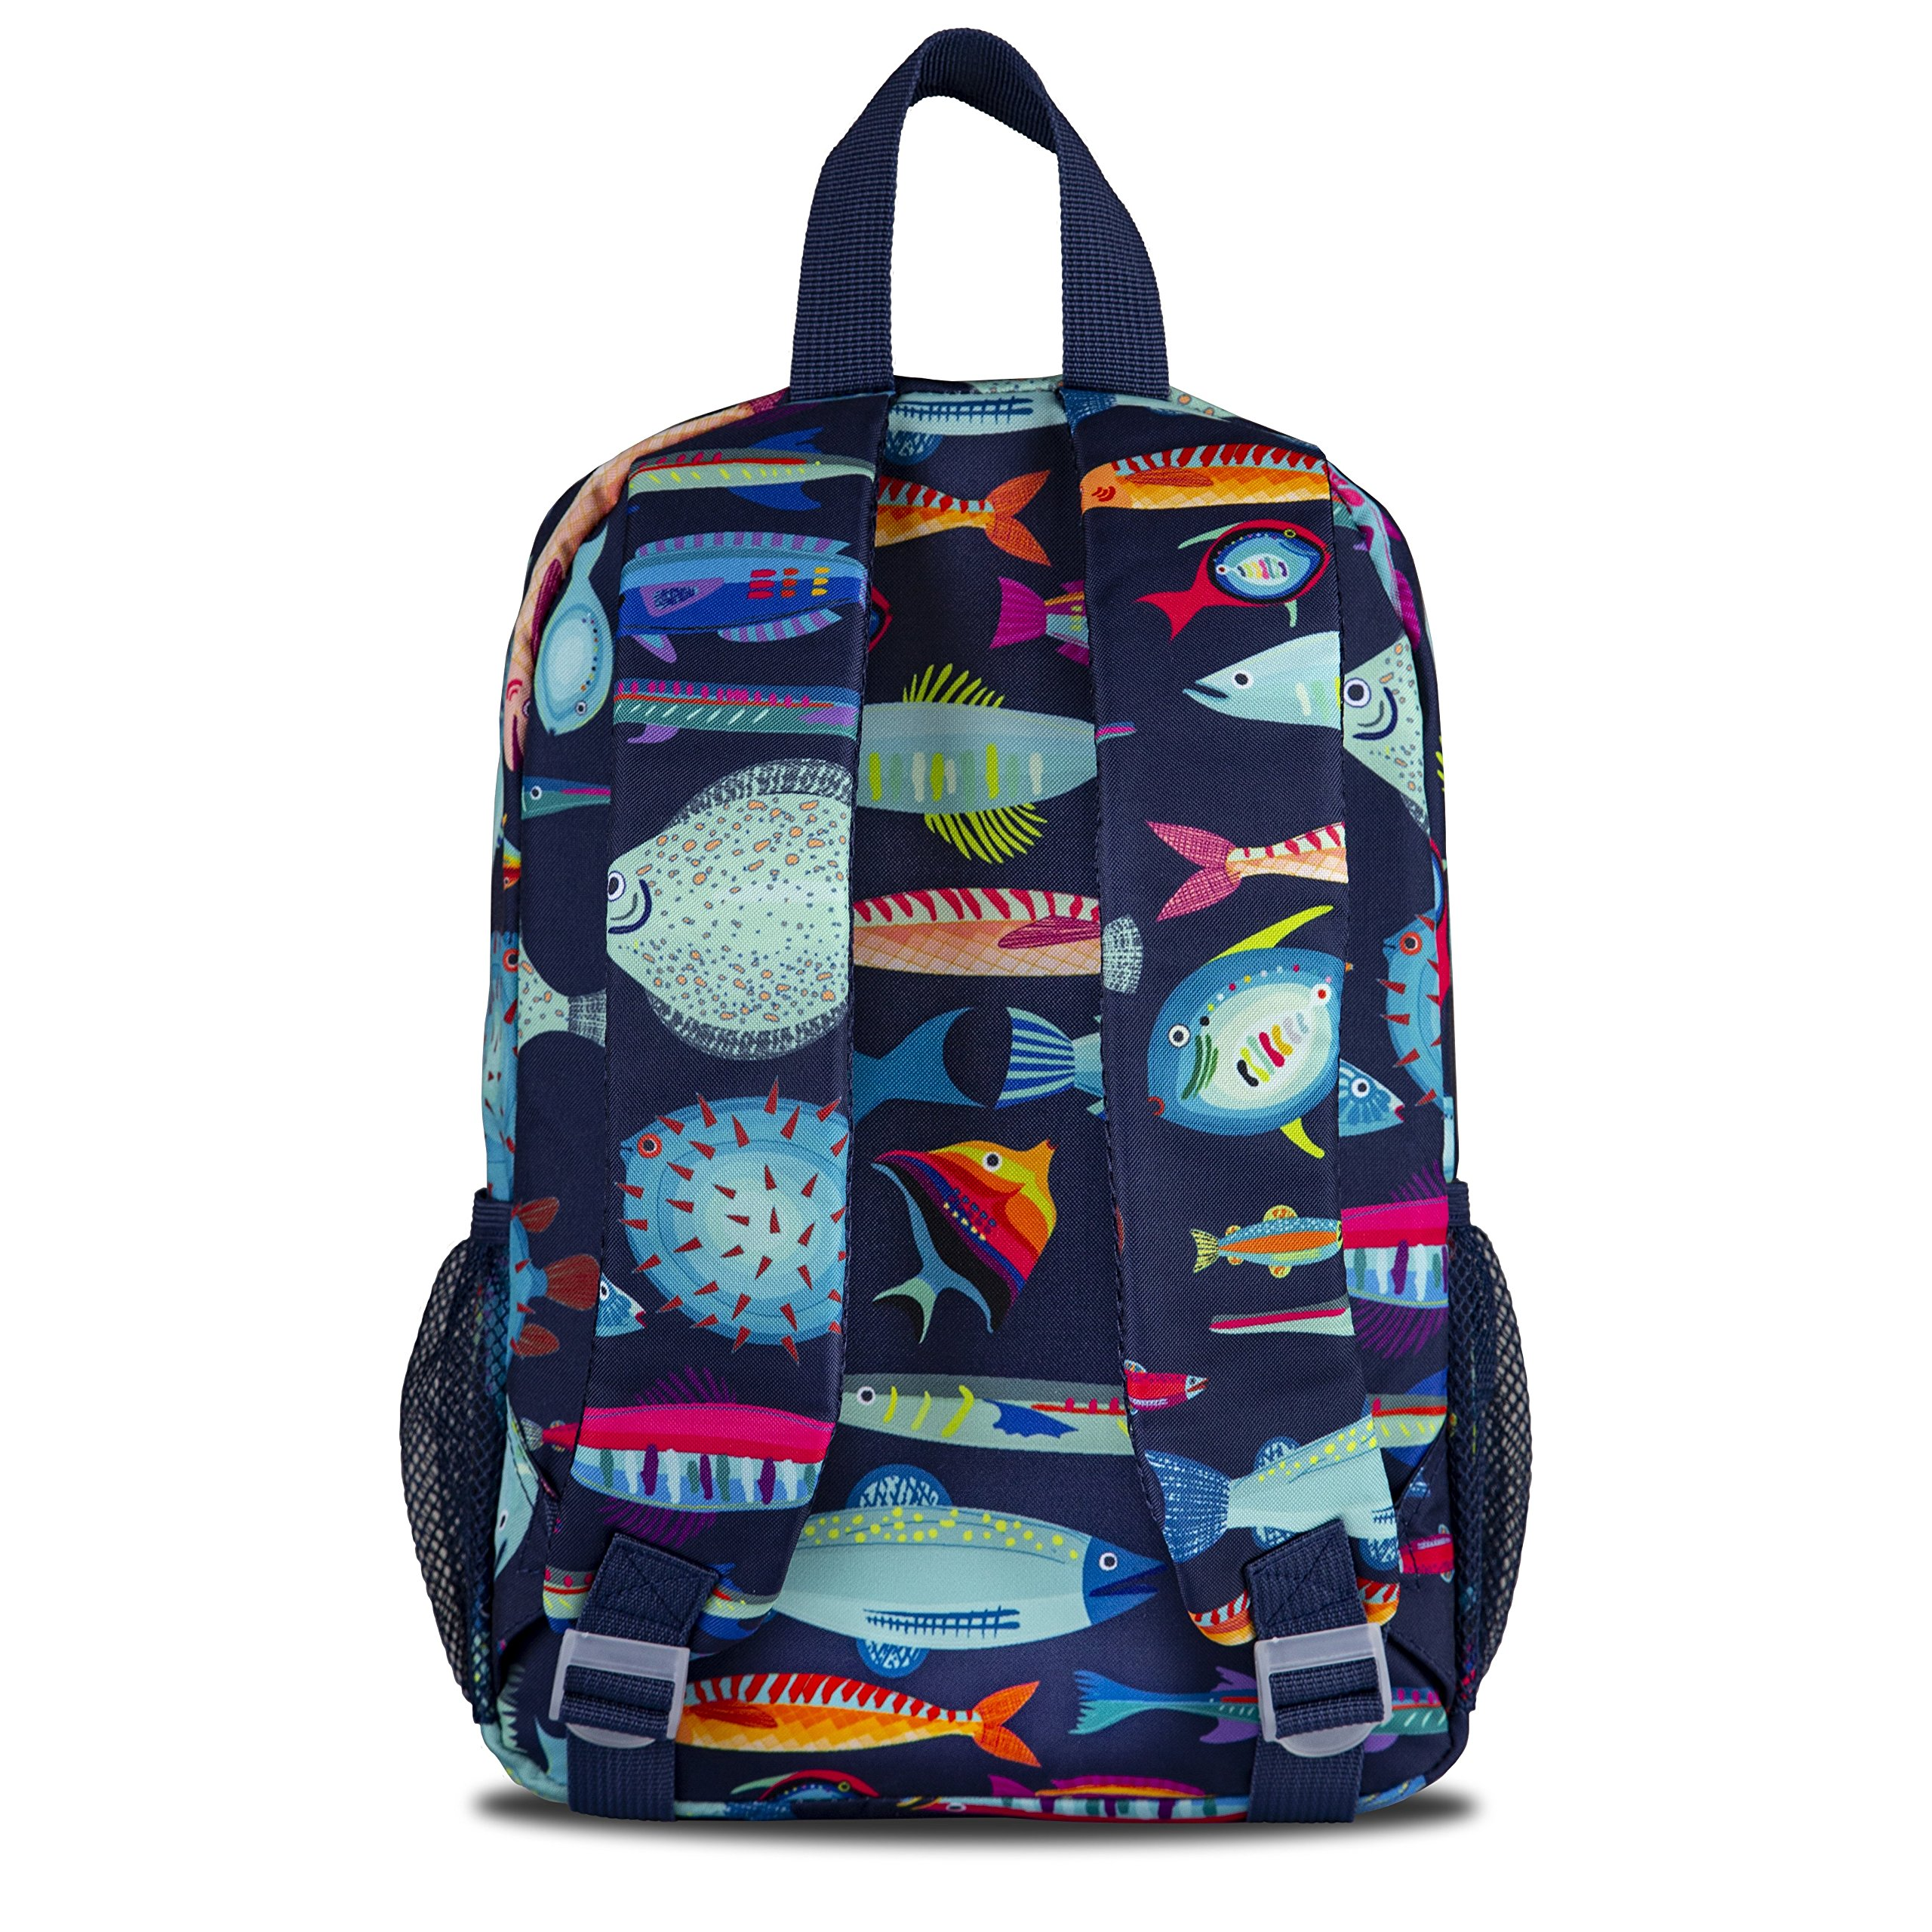 LONECONE Kids' Canvas Preschool Backpack - Integrated Tablet Sleeve, School of Fish by LONECONE (Image #3)